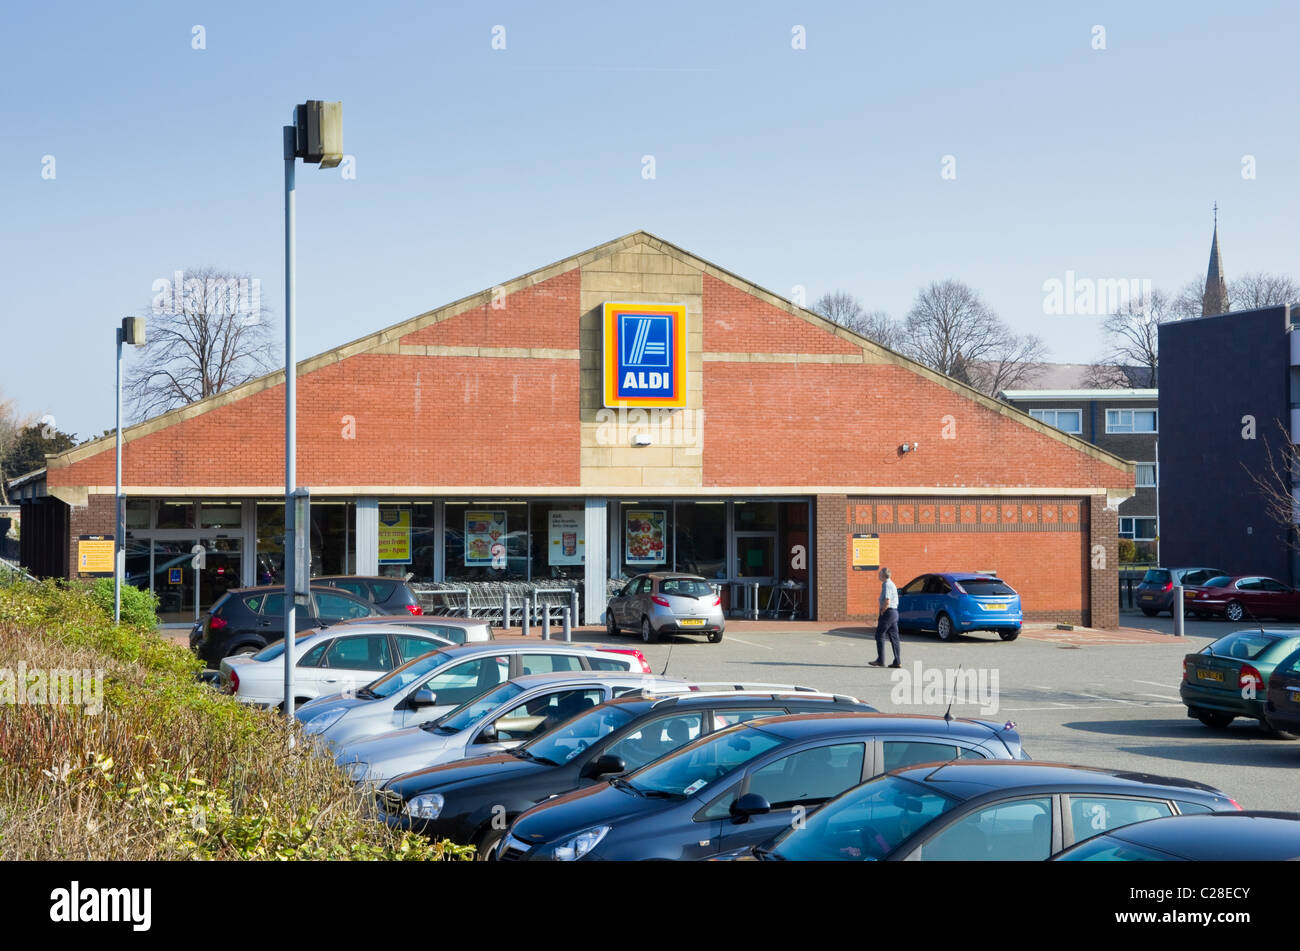 Aldi store front with cars in car park outside supermarket selling at cheaply. Bangor, Gwynedd, North Wales, UK, - Stock Image